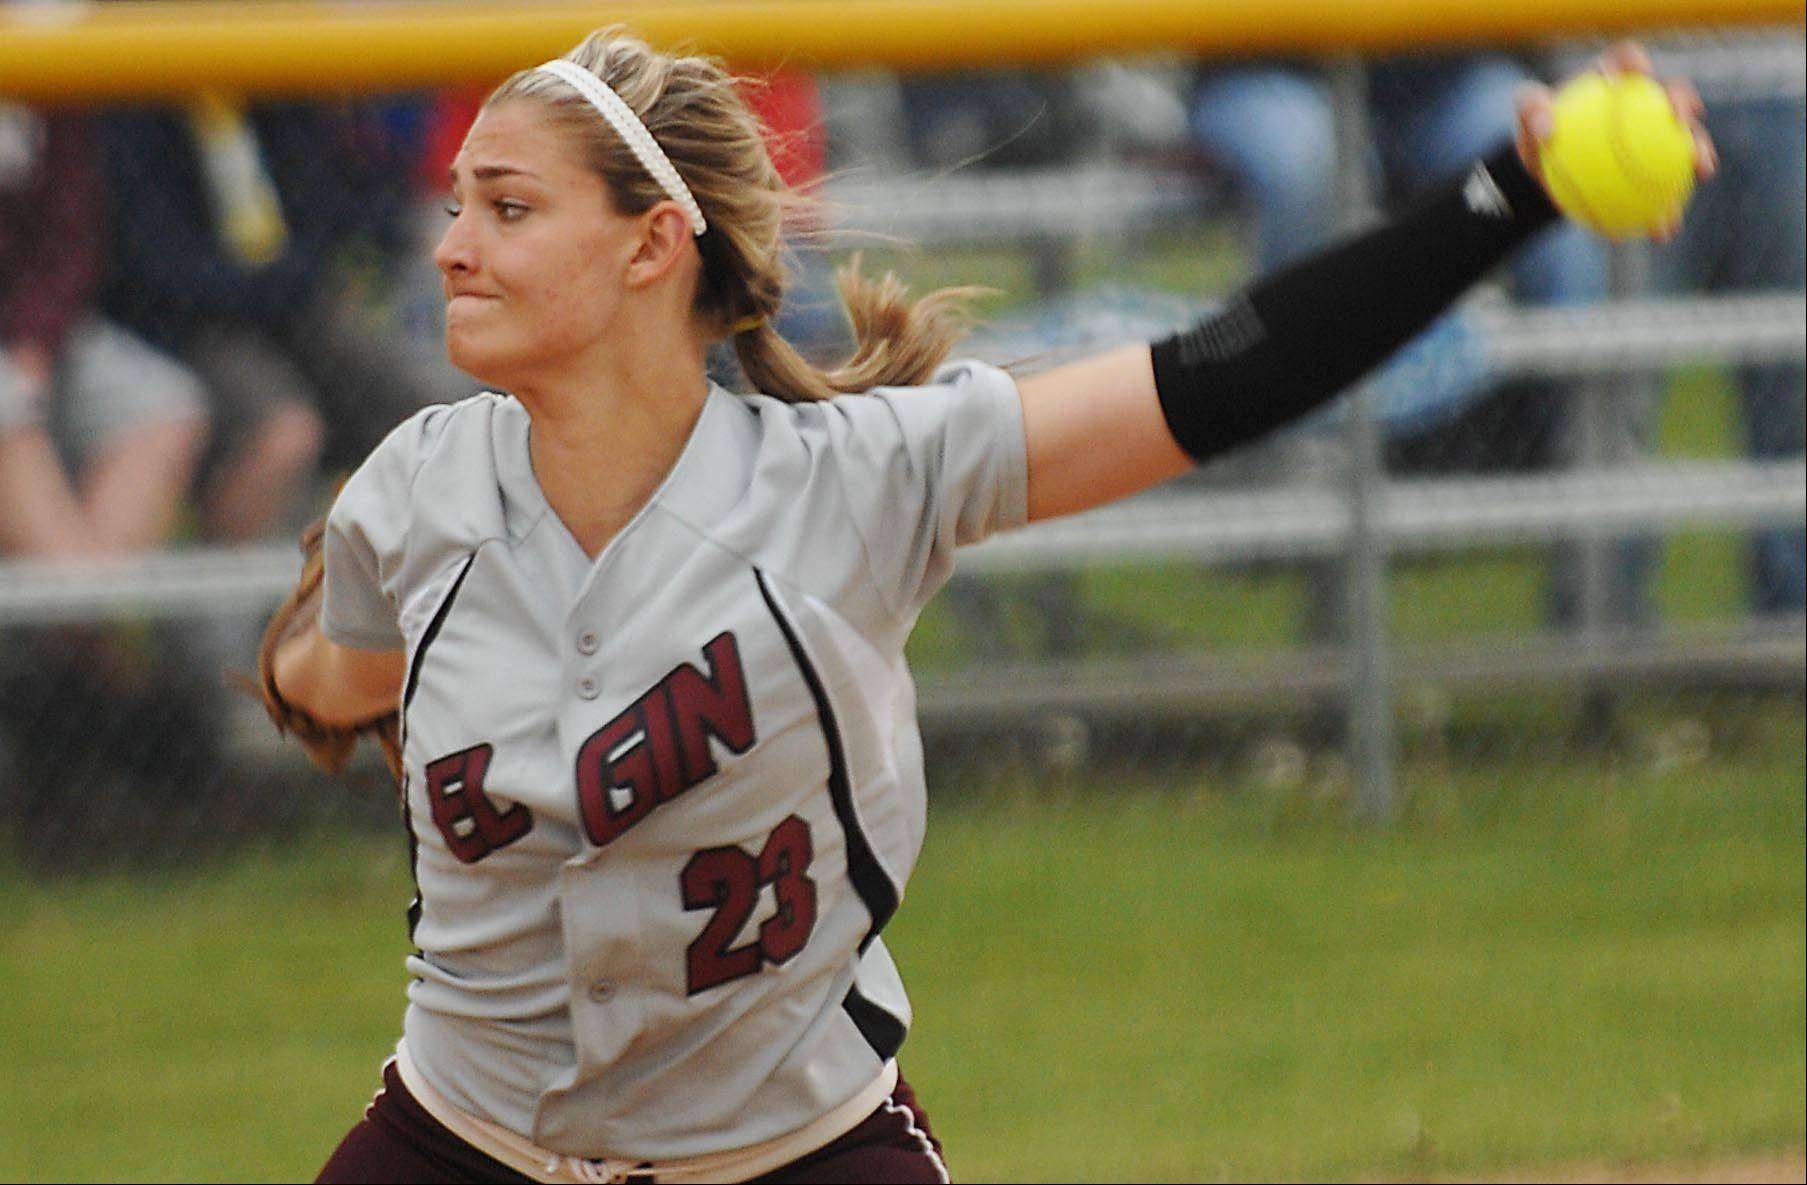 Elgin senior pitcher Hannah Perryman will lead the third-seeded Maroons into Larkin Slugfest on Saturday at the Elgin Sports Complex.